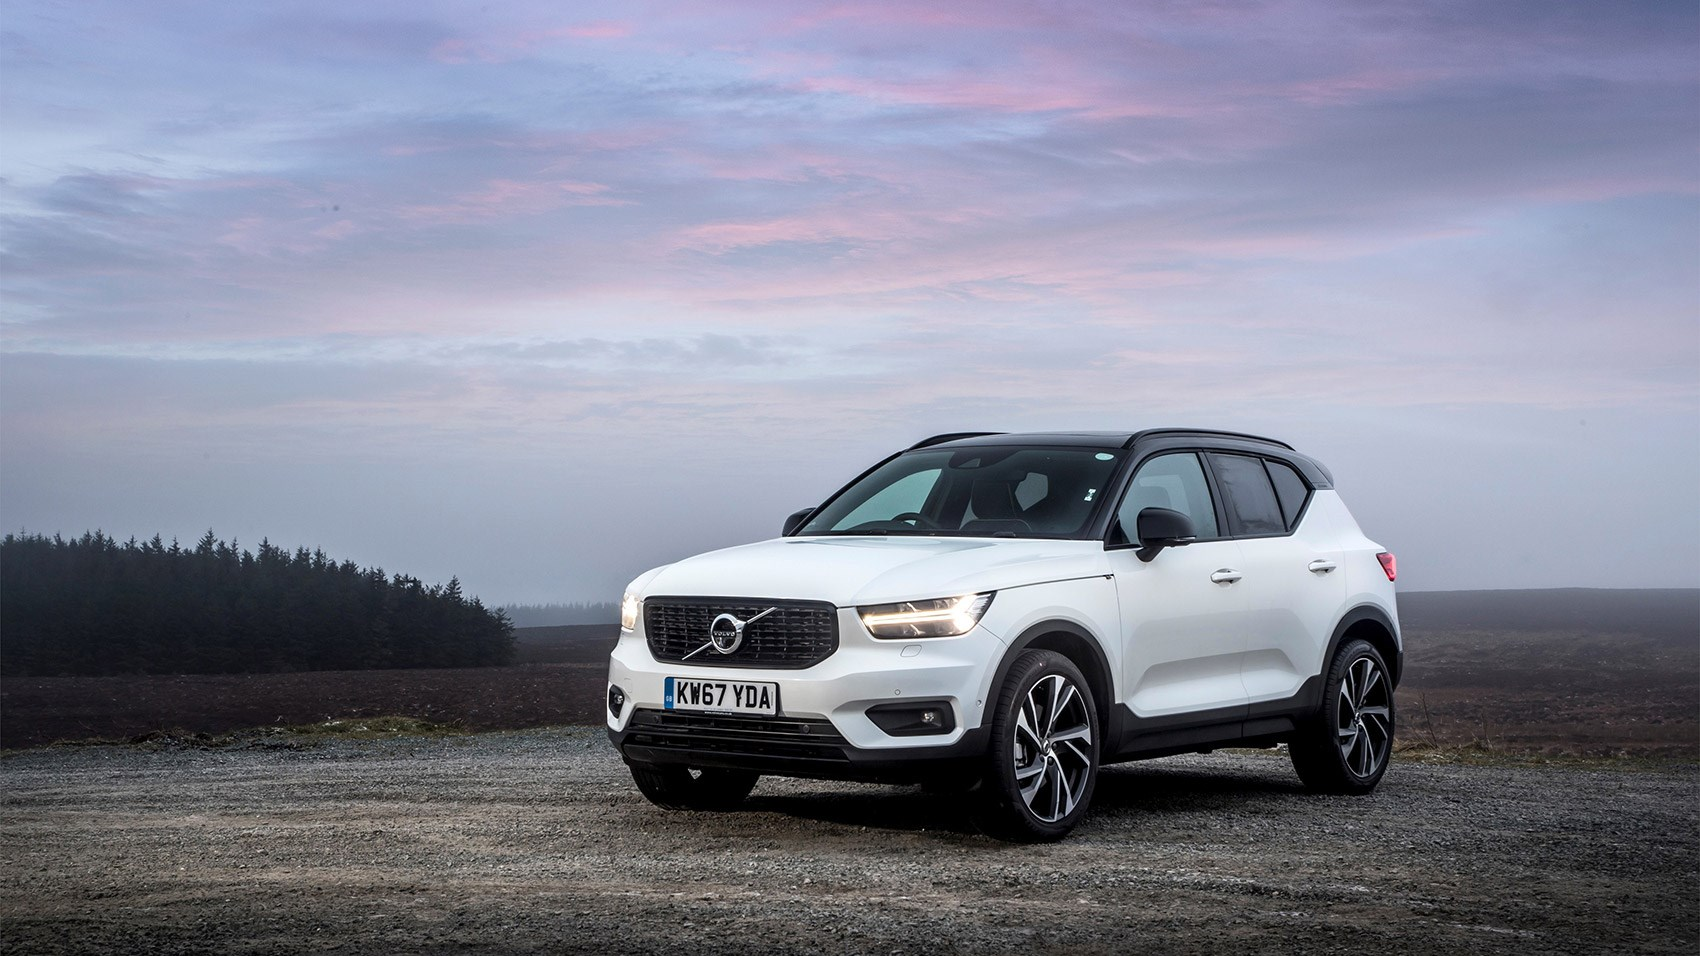 volvo xc40 suv review specs prices pictures car magazine. Black Bedroom Furniture Sets. Home Design Ideas